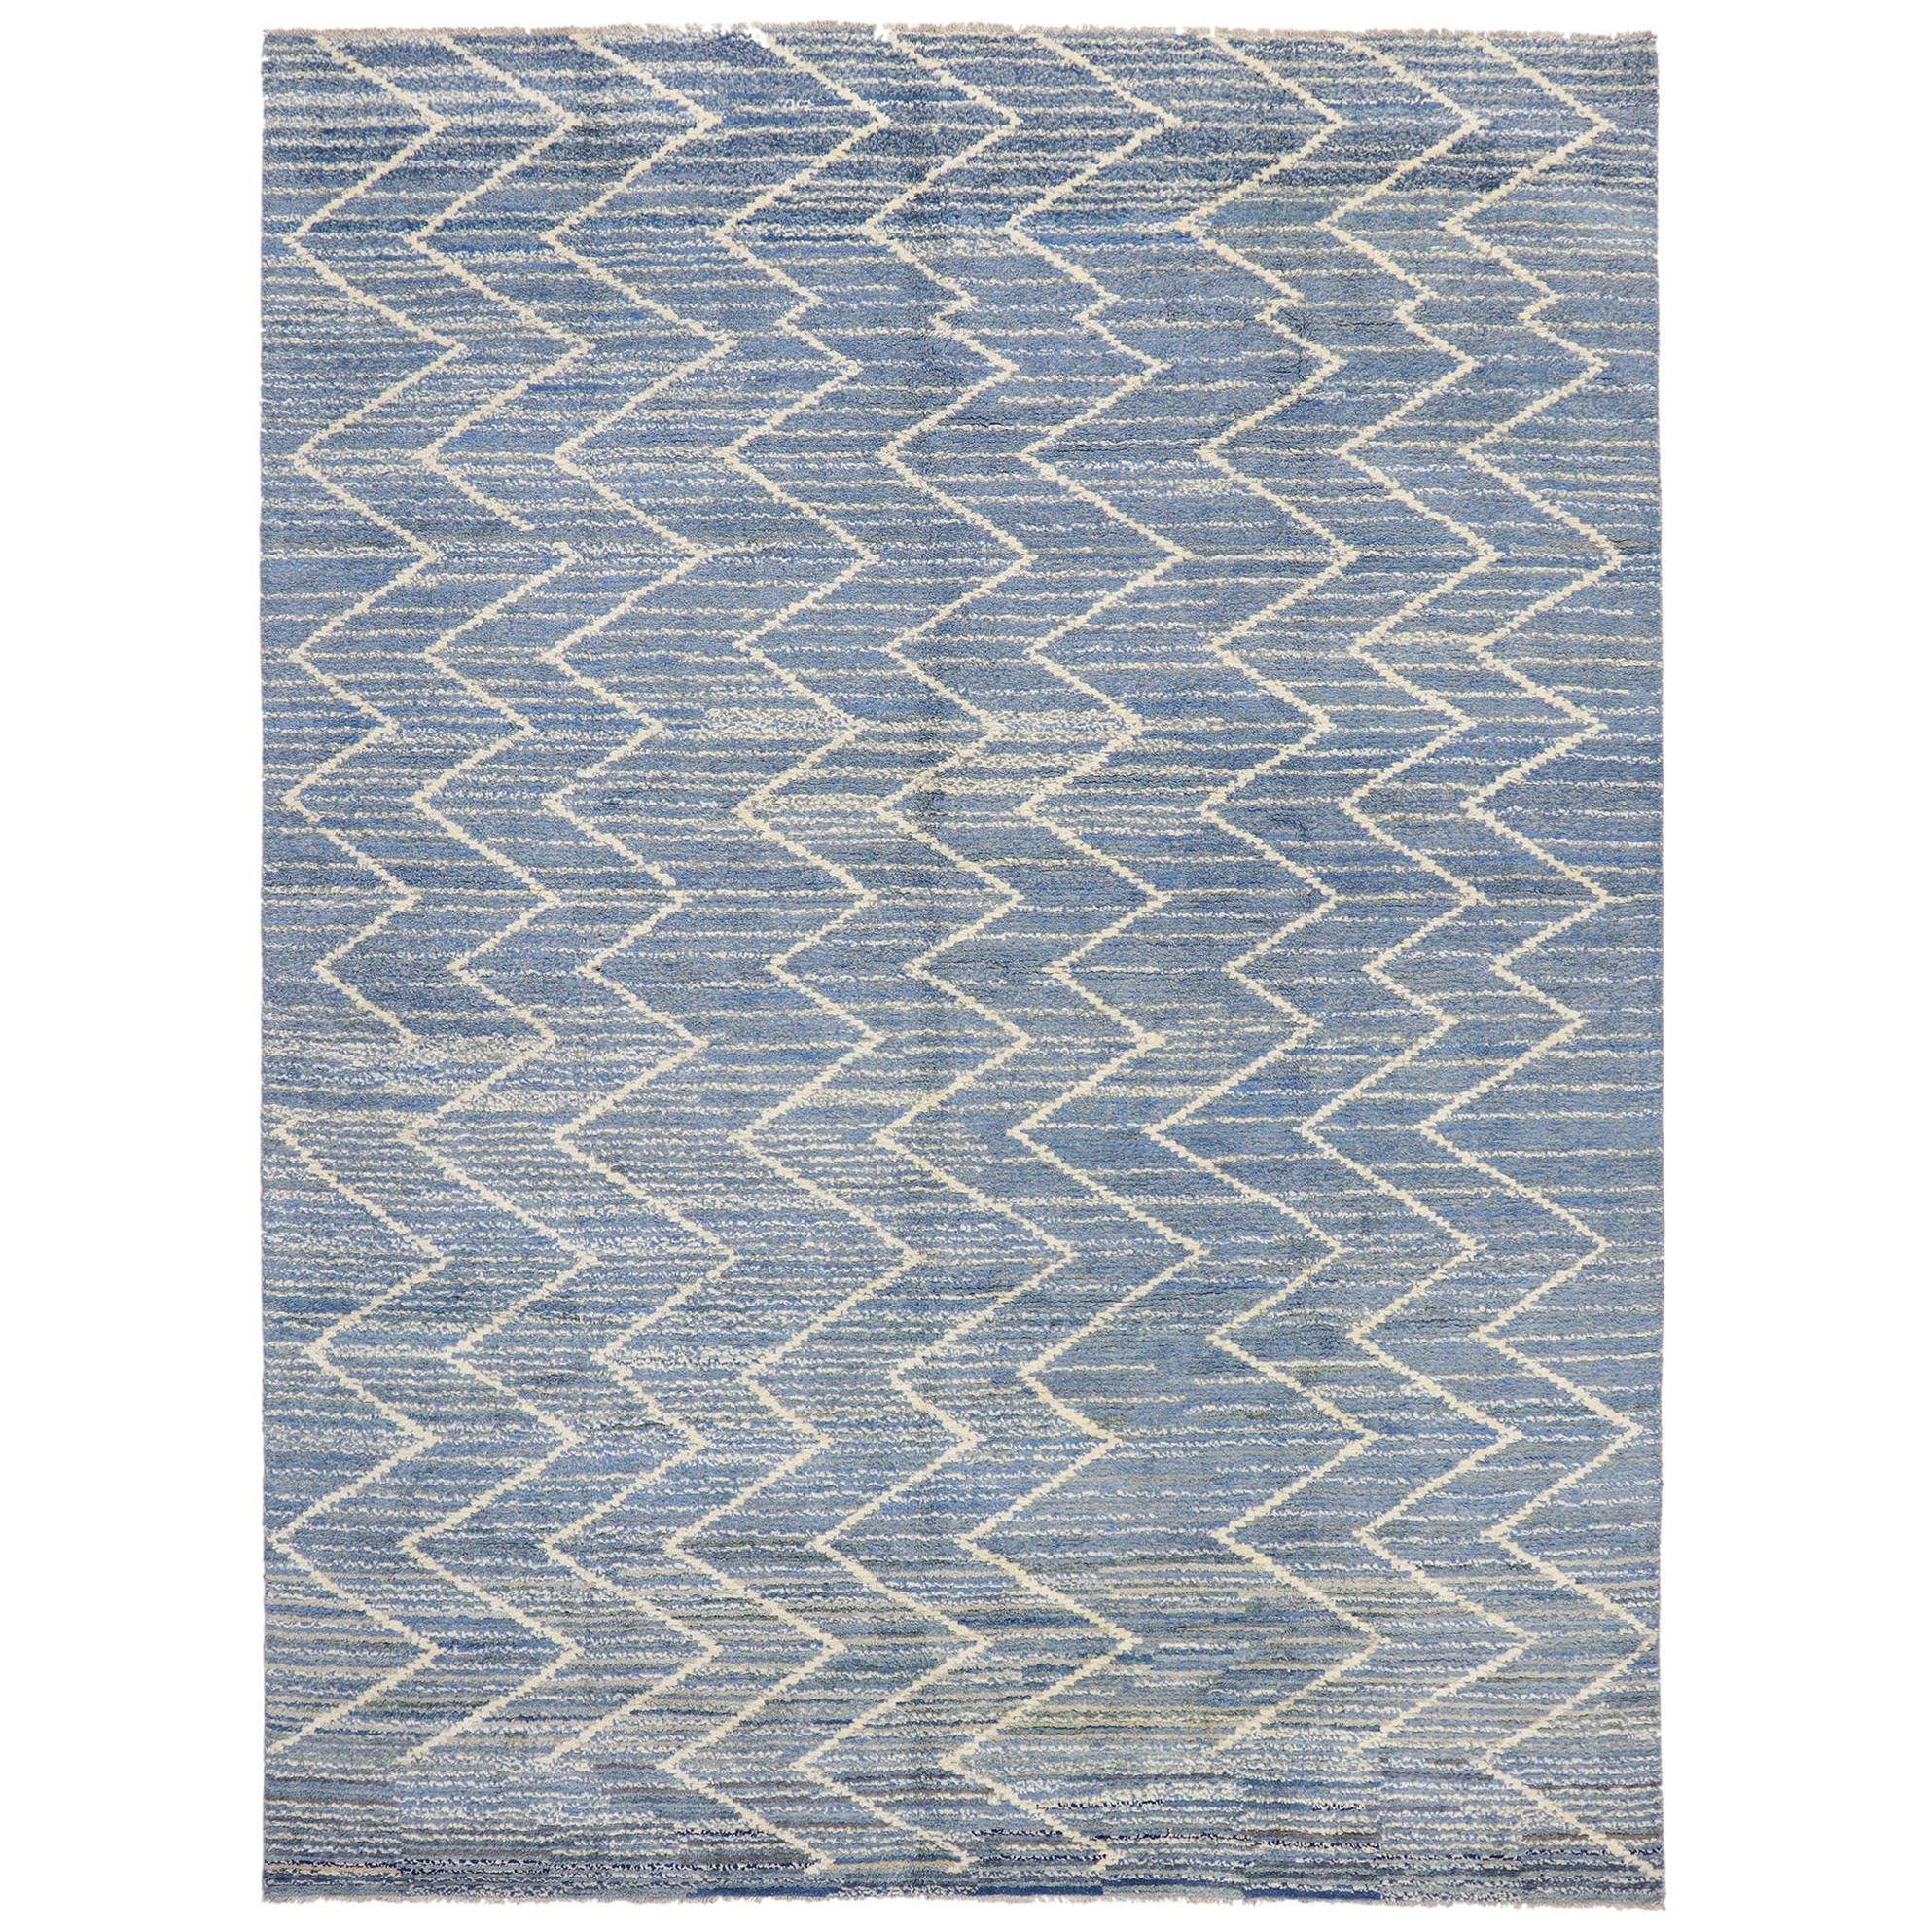 New Contemporary Moroccan Style Rug with Modern Chevron Design